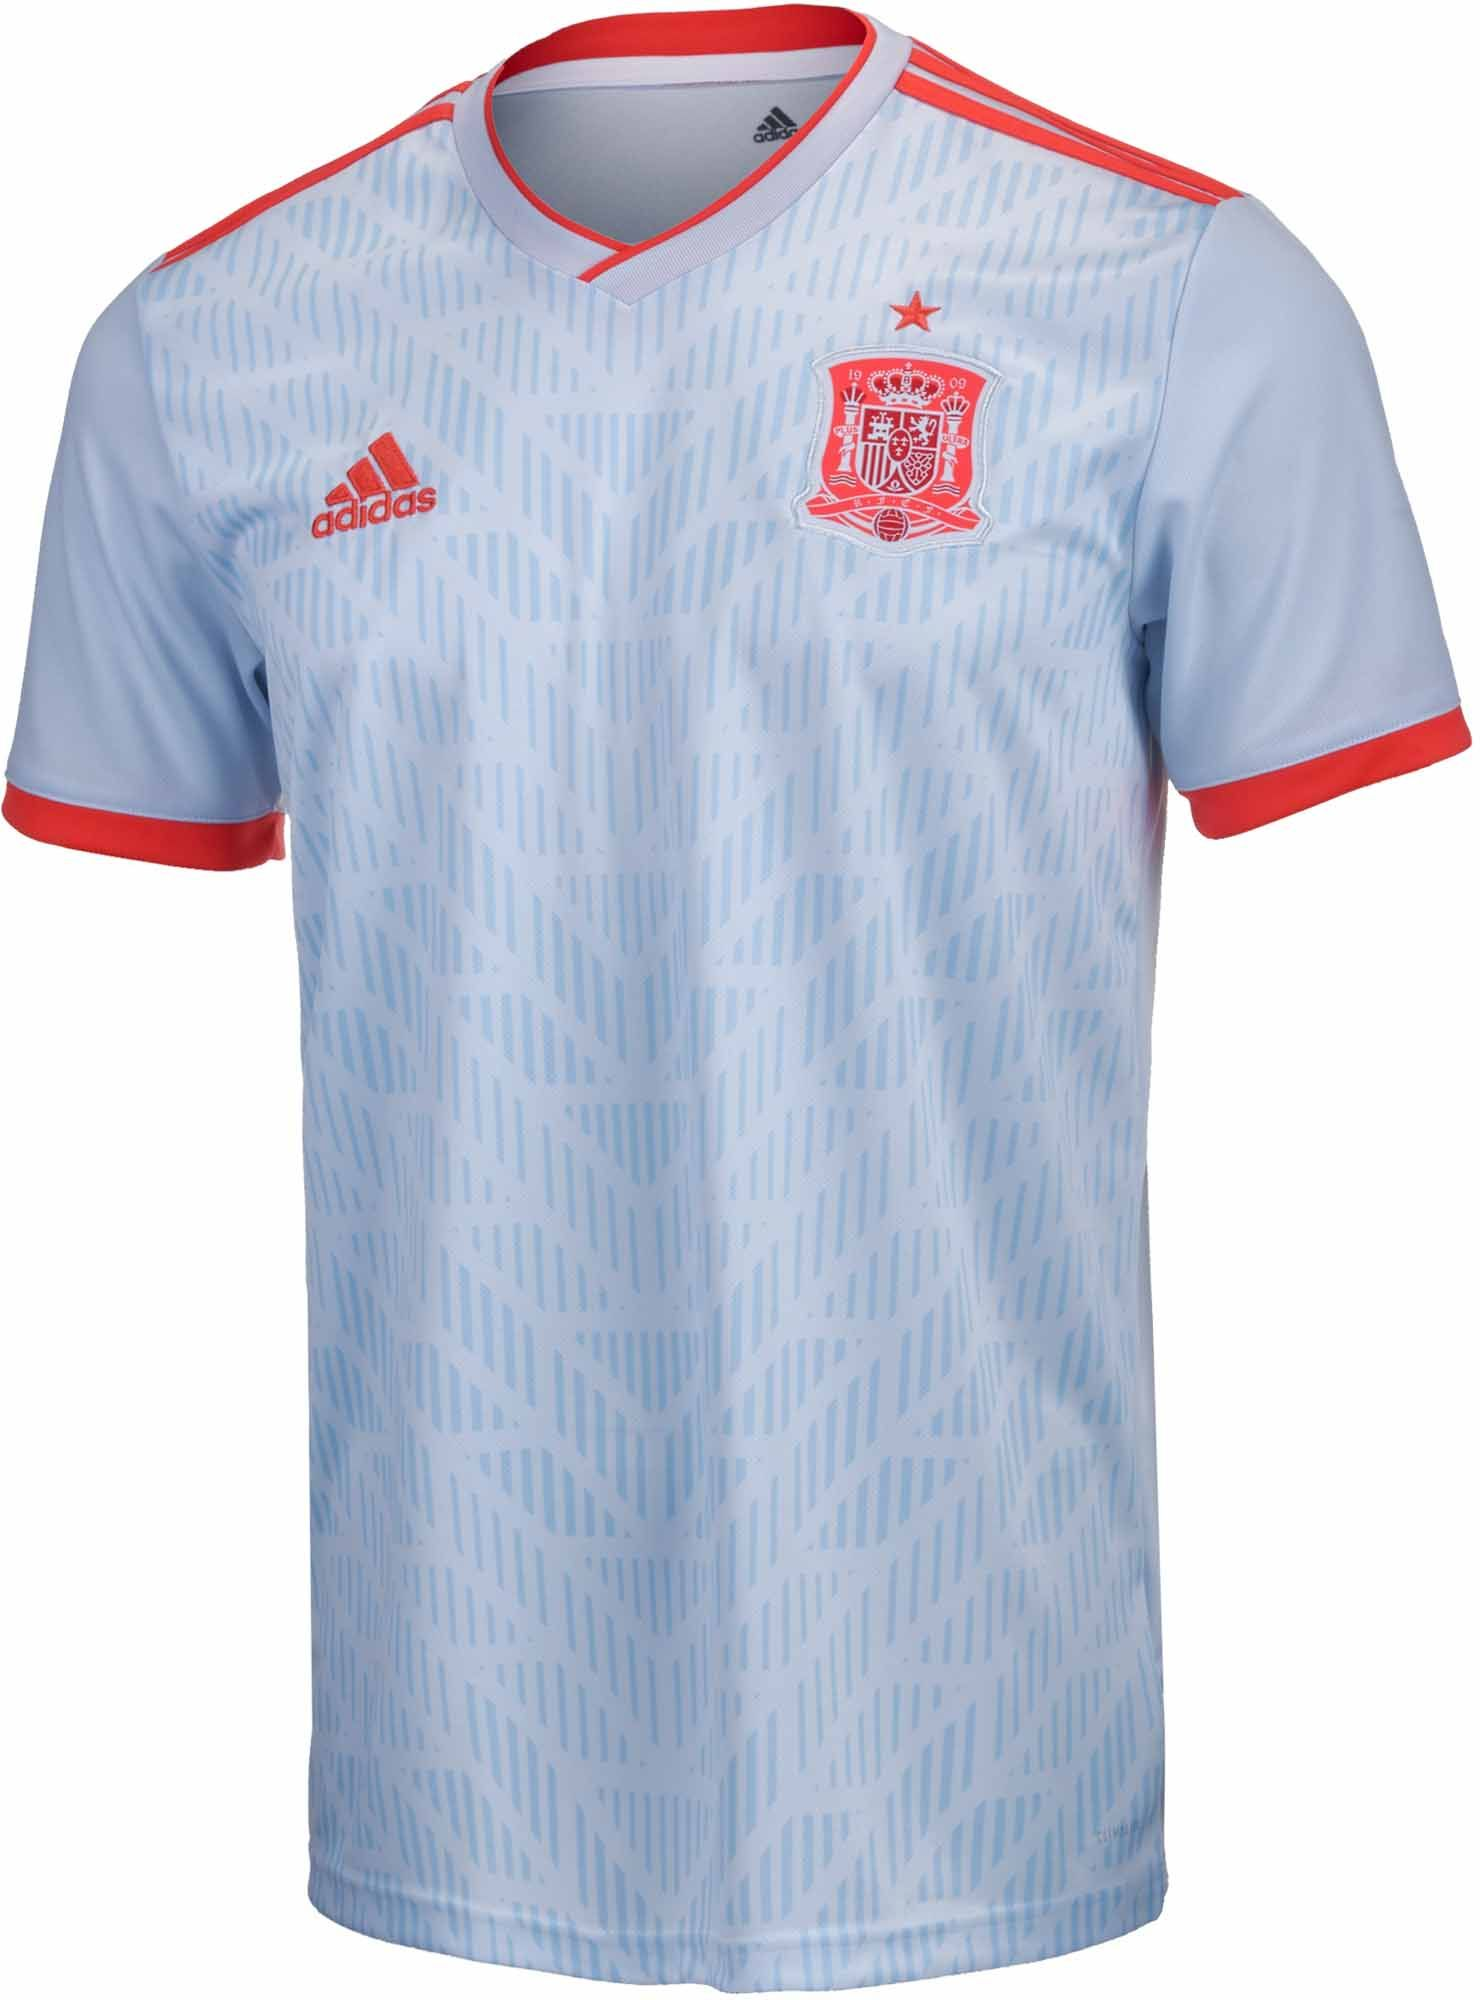 6acf7fb21b5 Kids 2018 adidas Spain Away Jersey. Hot right now at SoccerPro.